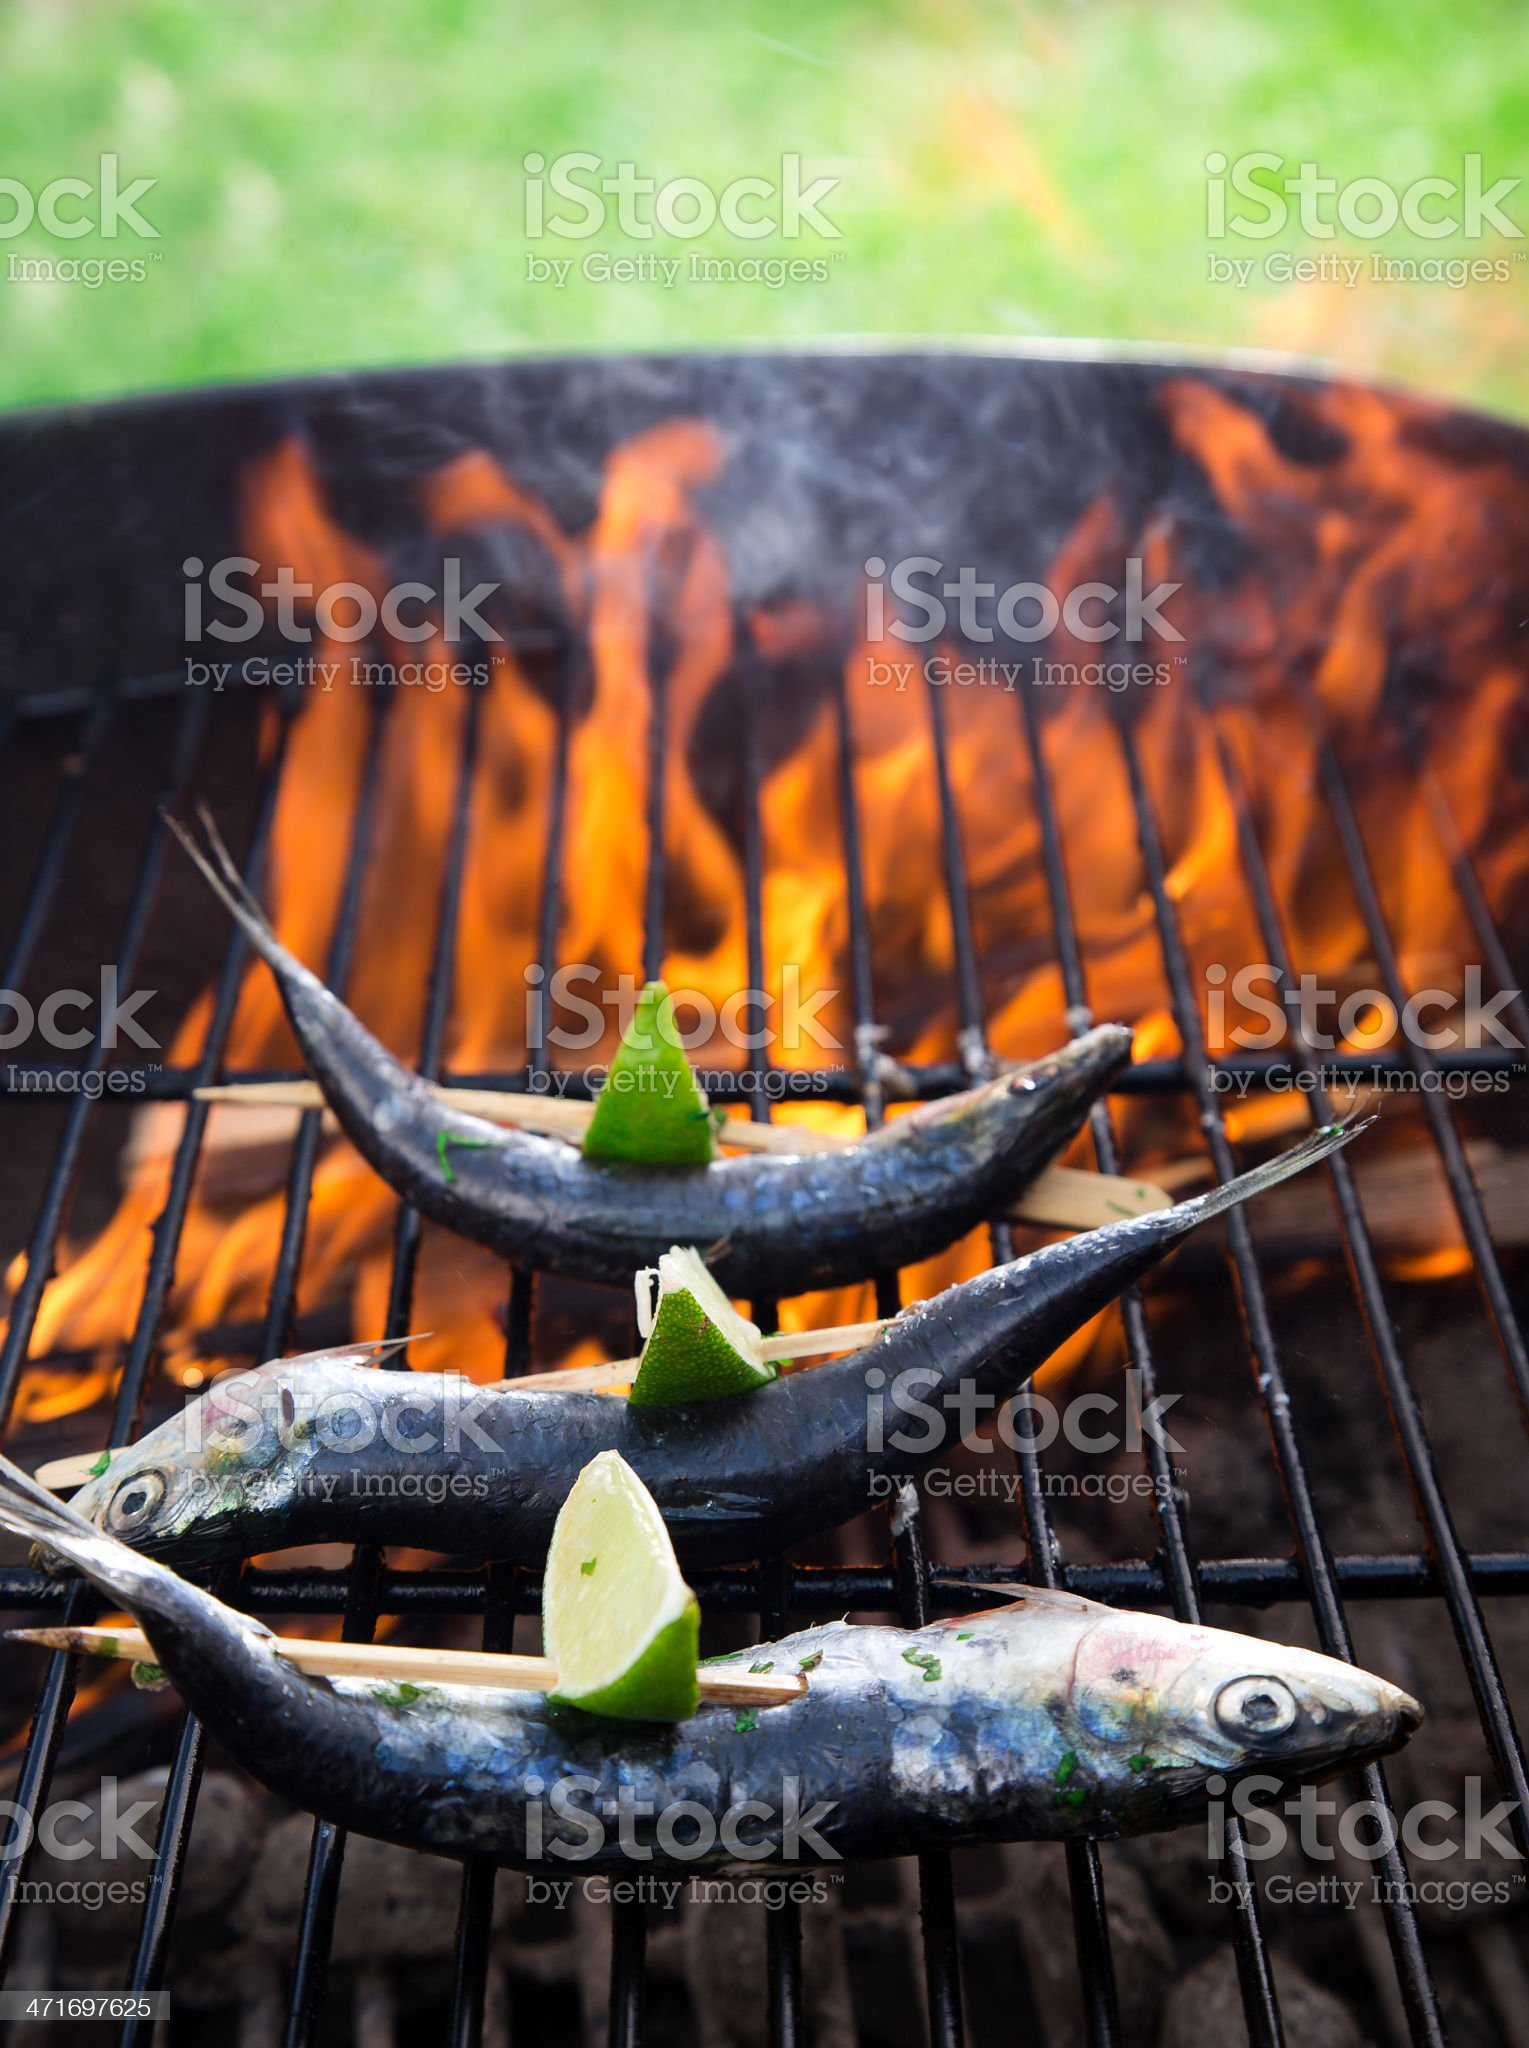 Fish on grill royalty-free stock photo